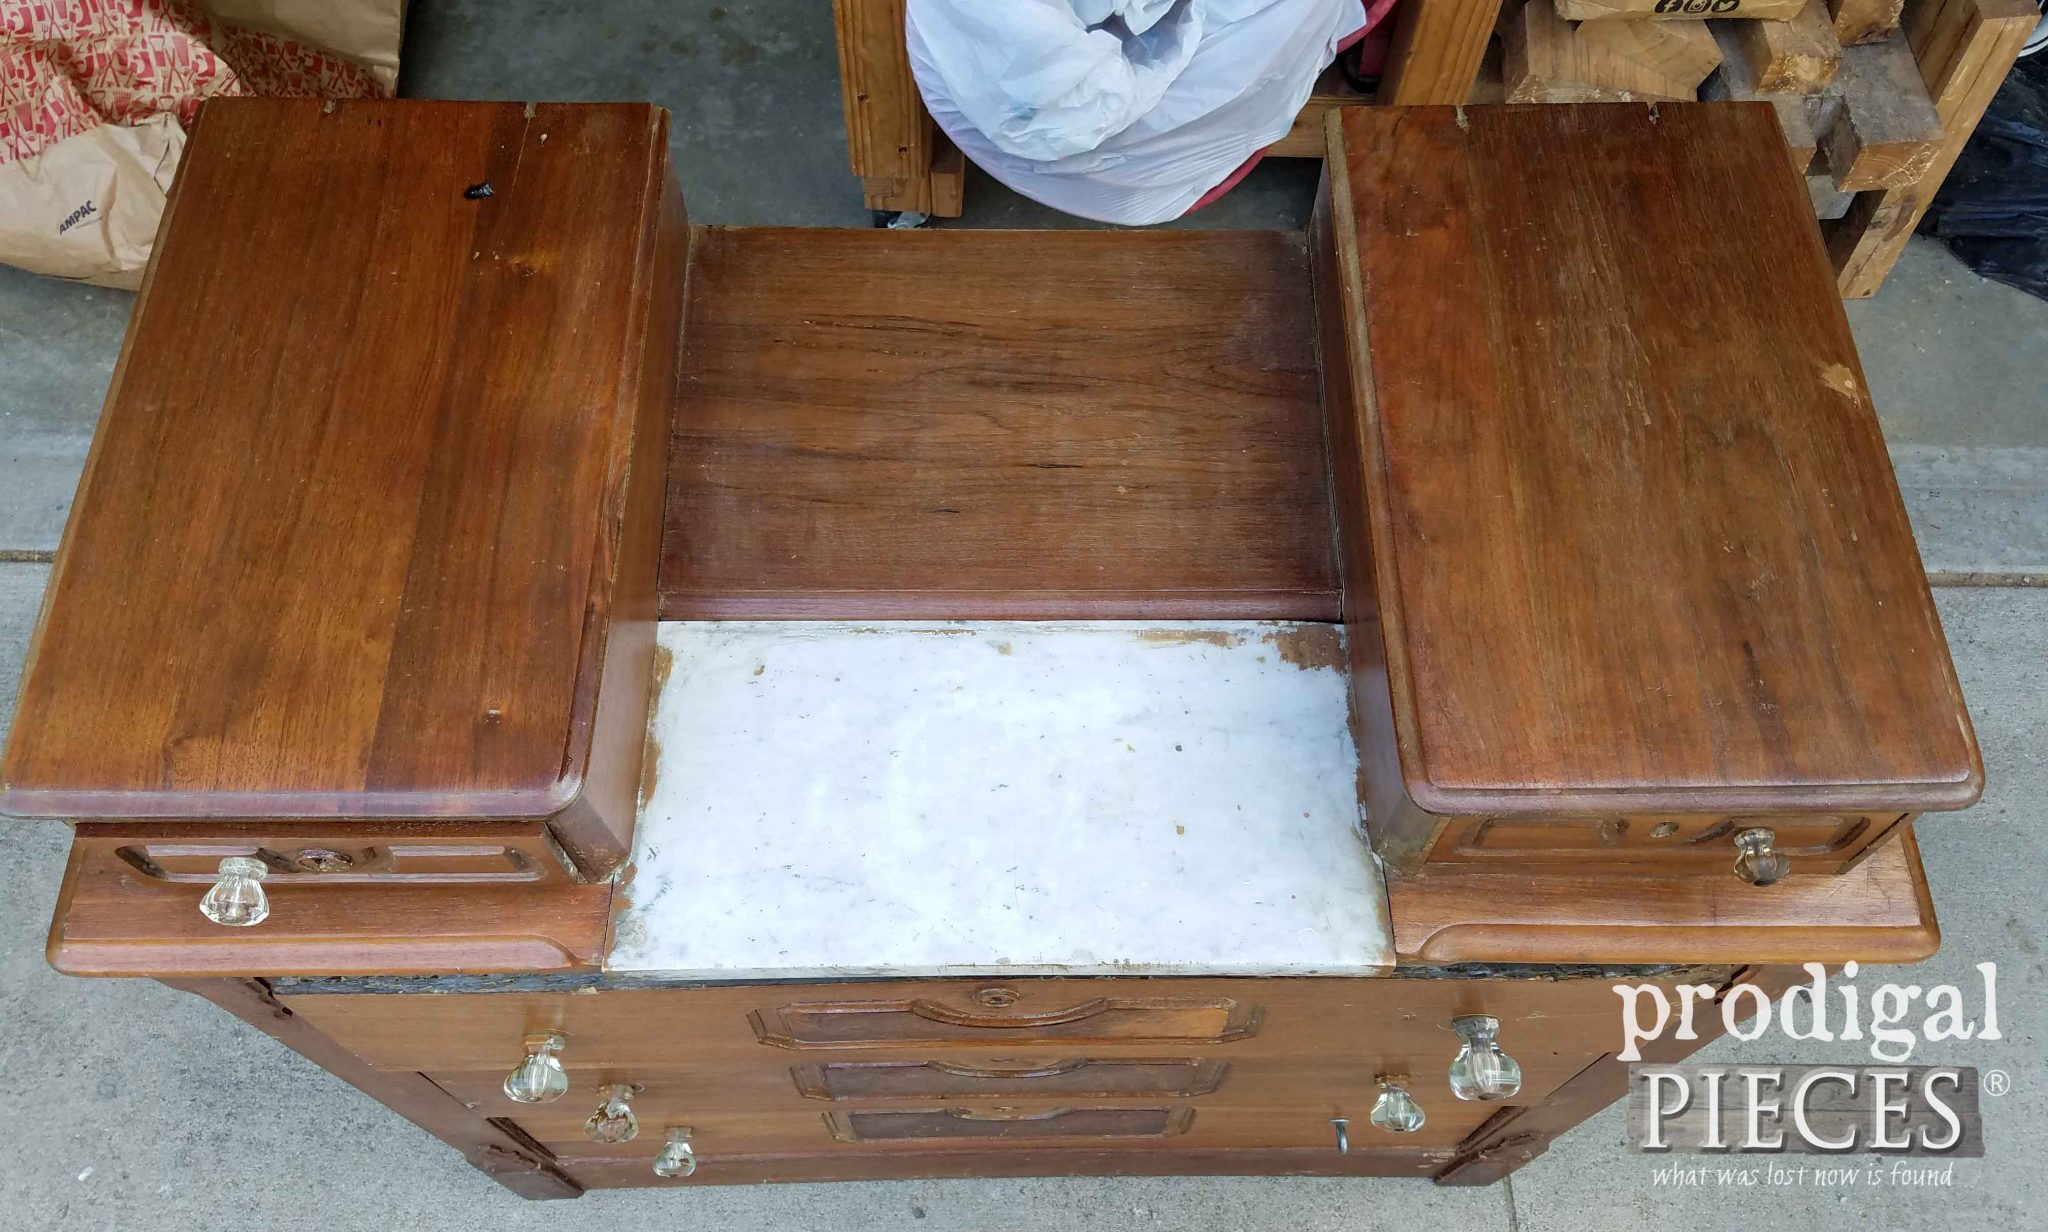 Marble Topped Antique Chest | prodigalpieces.com